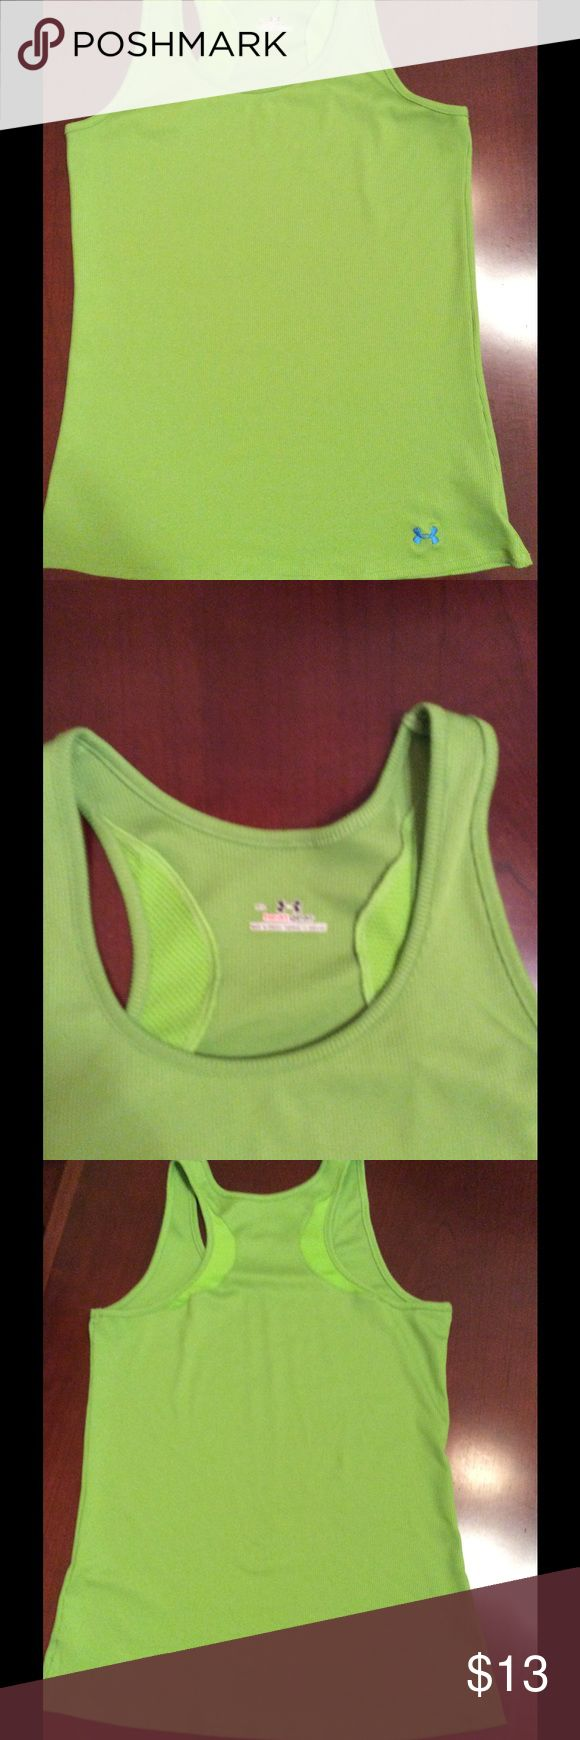 Women's Under Armour Lime Green Racer Back shirt GUC.  Smoke free home.  No stains or obvious signs of wear. Under Armour Tops Tank Tops